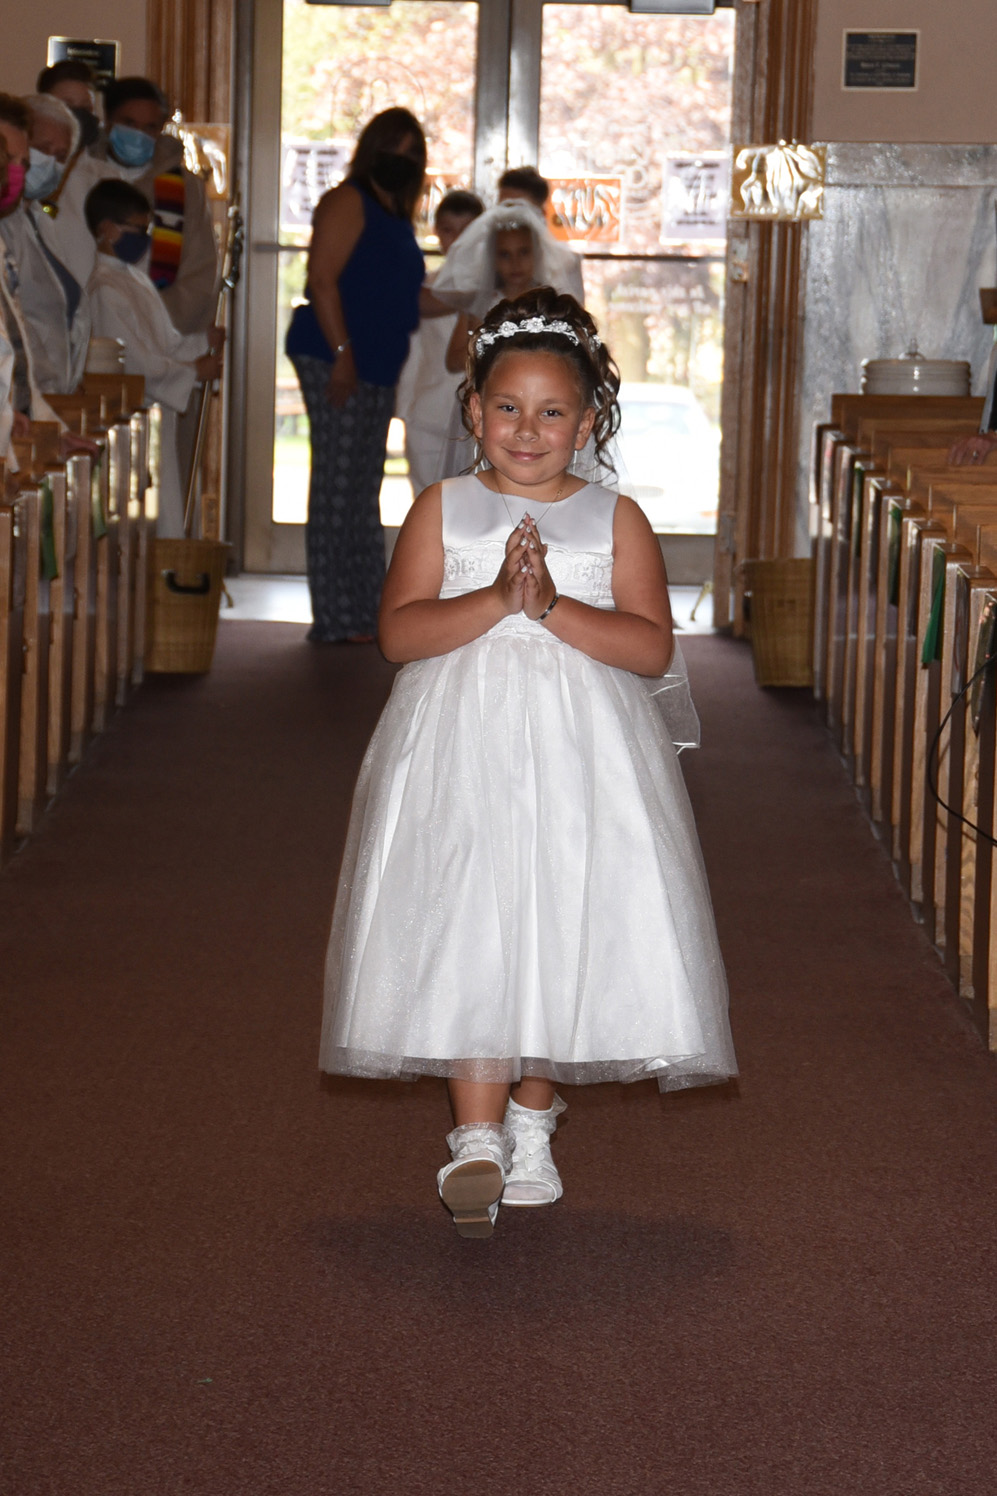 FIRST-COMMUNION-MAY-15-2021-10011053